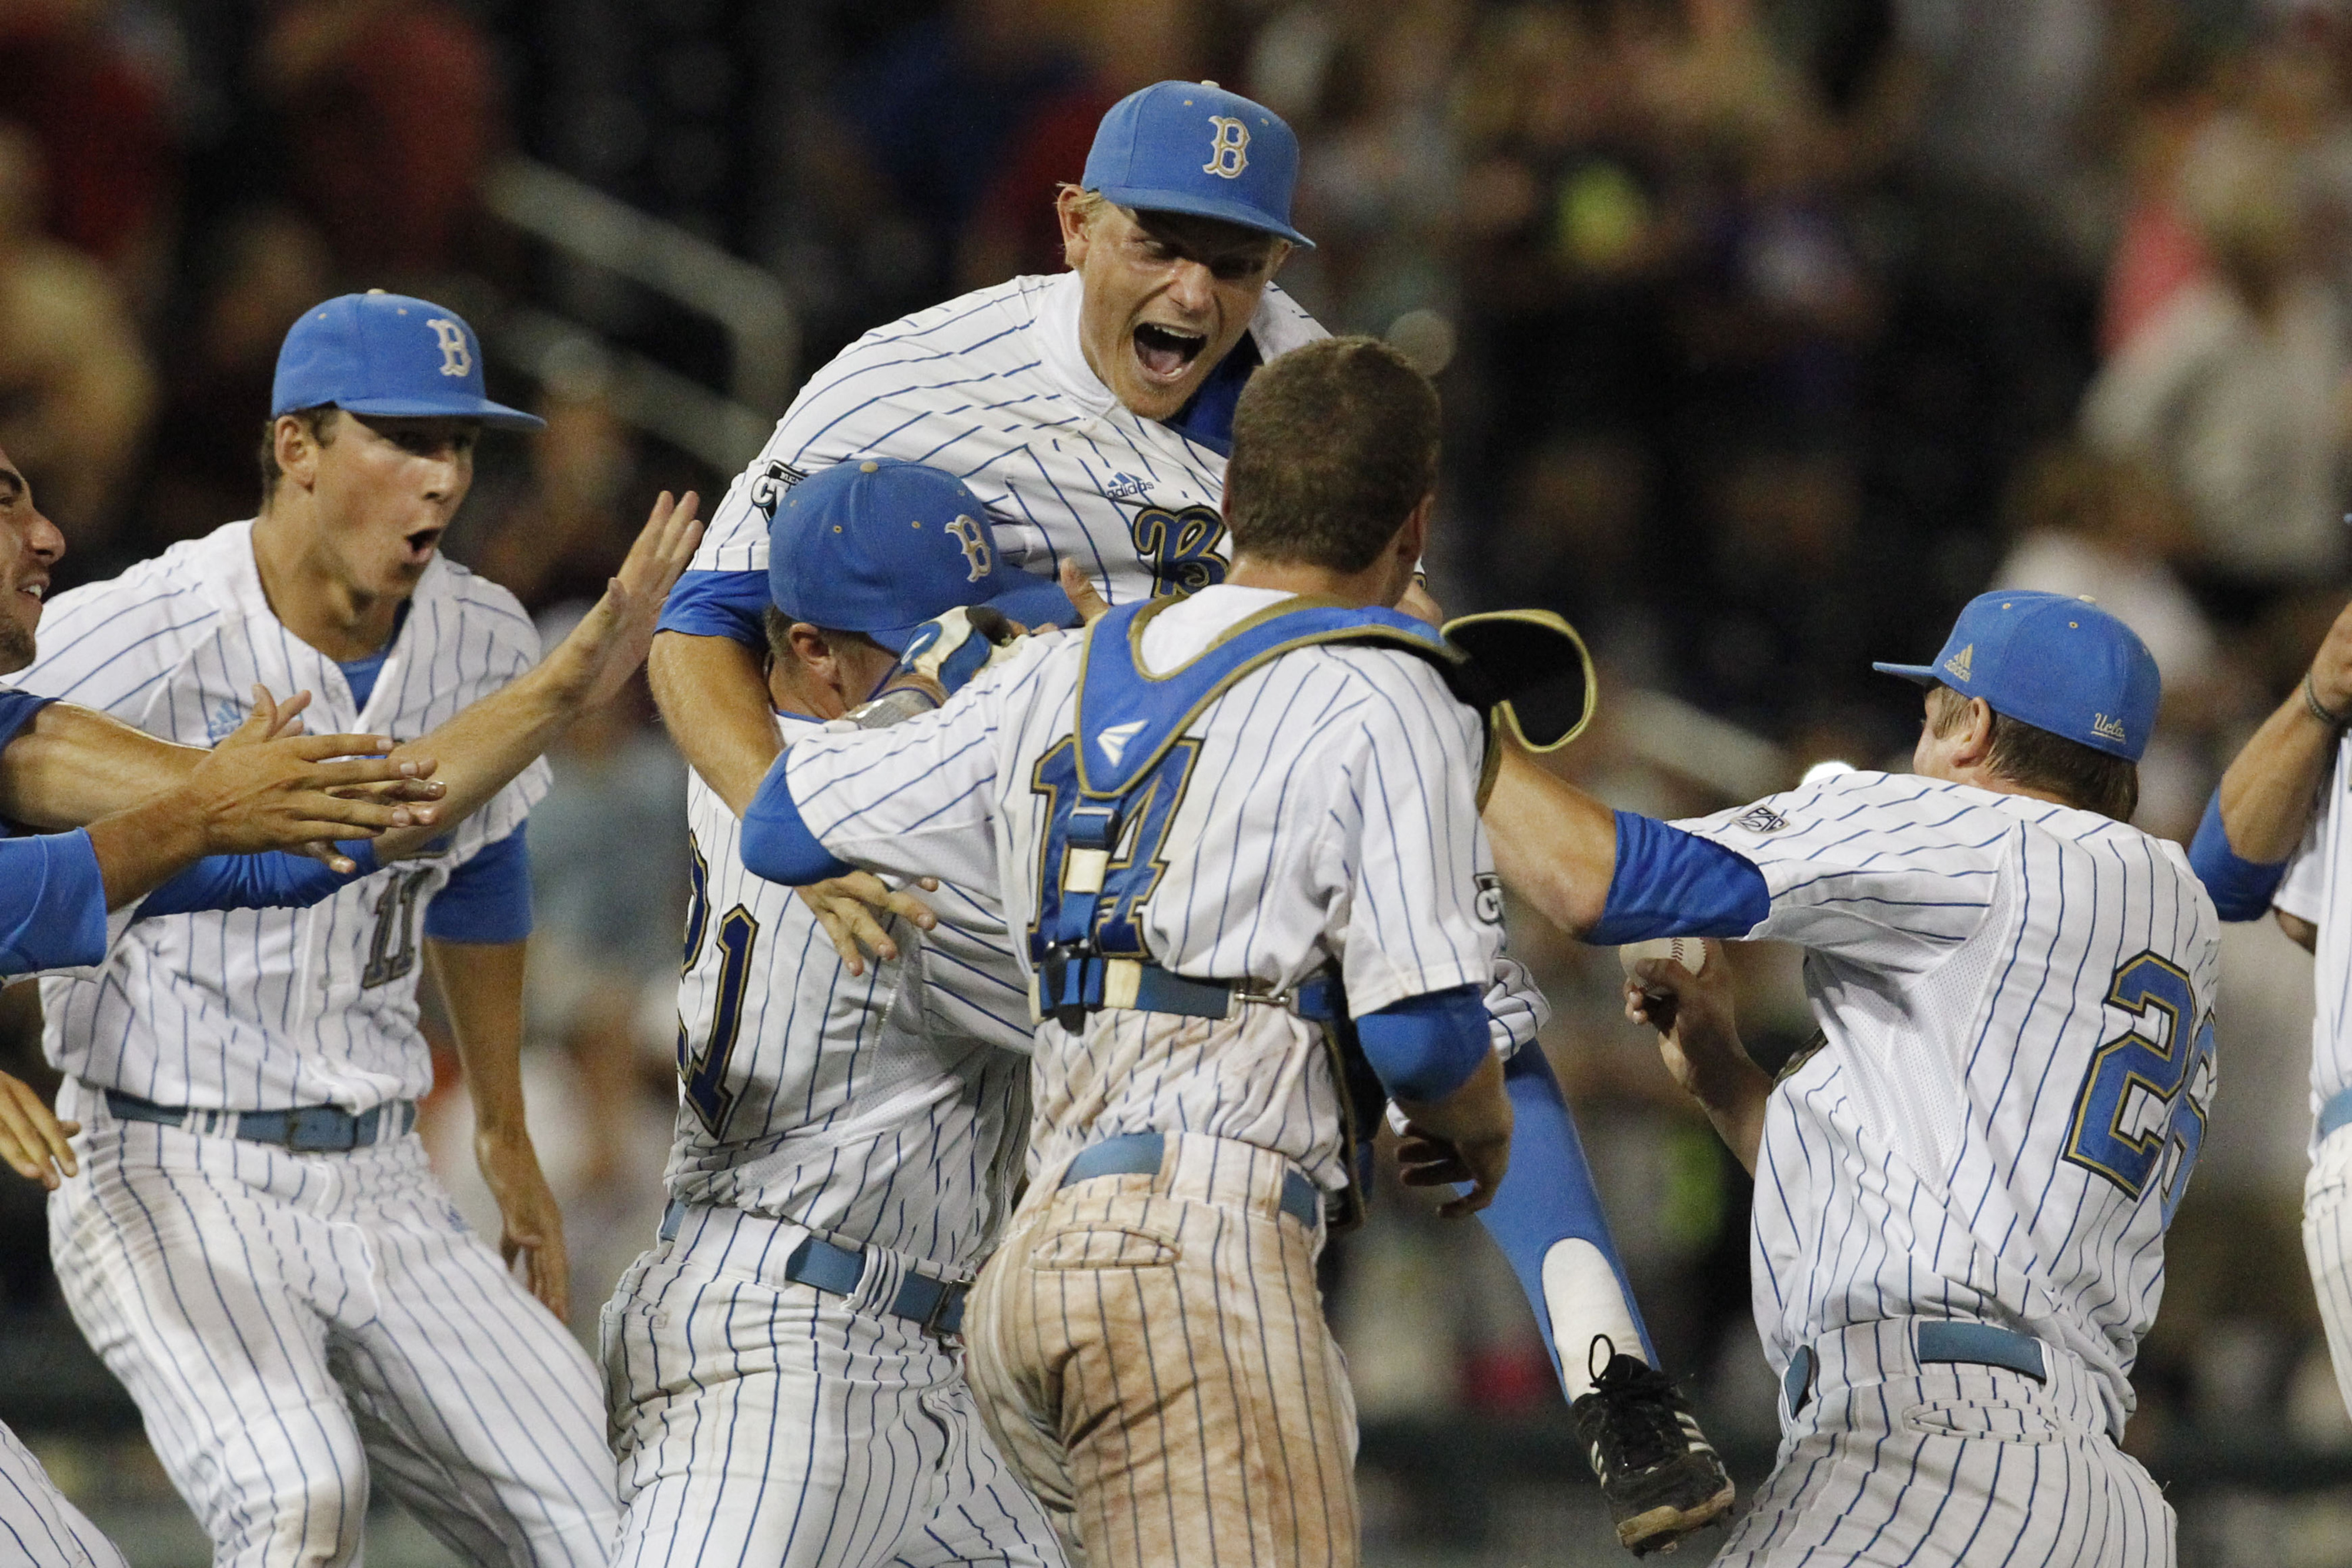 College World Series 2013 finals: UCLA wins the national championship